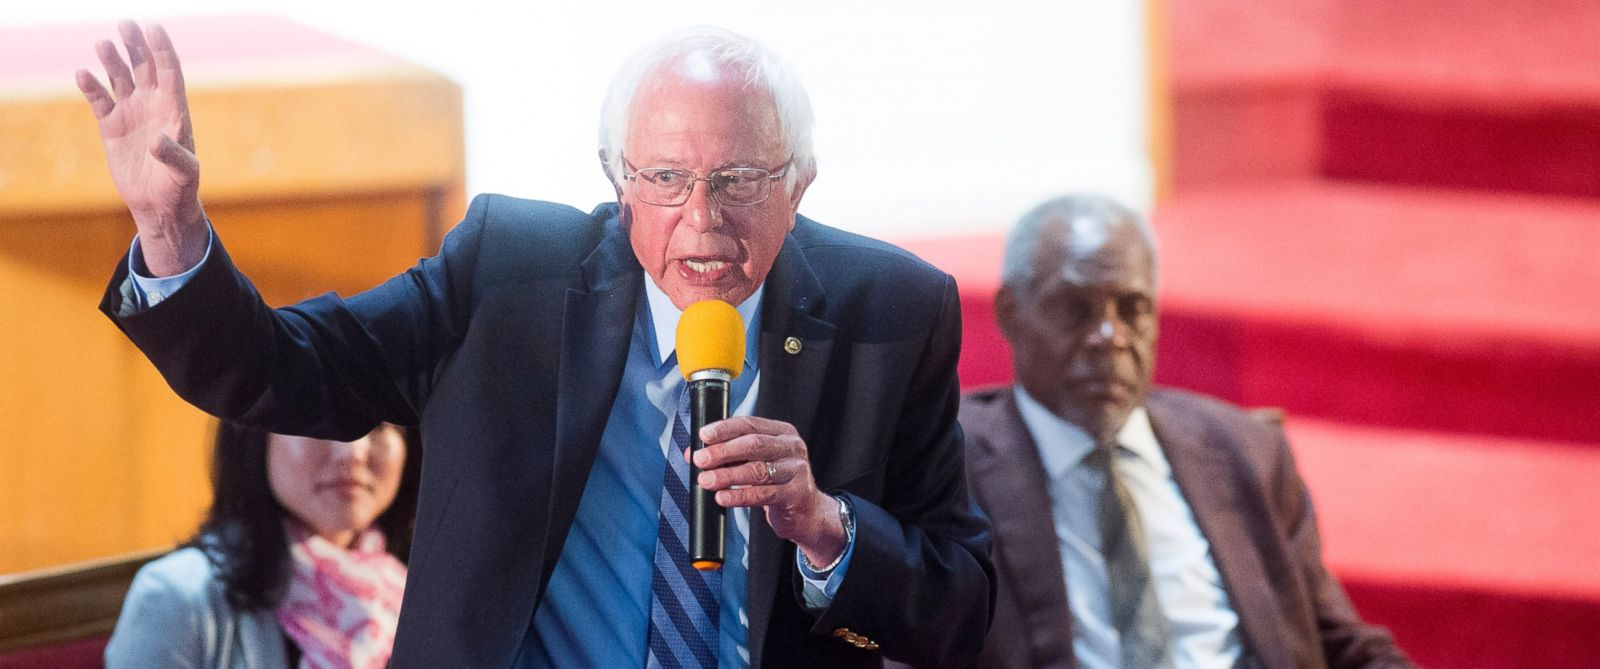 PHOTO: Democratic presidential candidate Sen. Bernie Sanders, I-Vt., speaks at Allen Temple Baptist Church during a campaign rally, Monday, May 30, 2016, in Oakland, Calif. At right is actor Danny Glover.